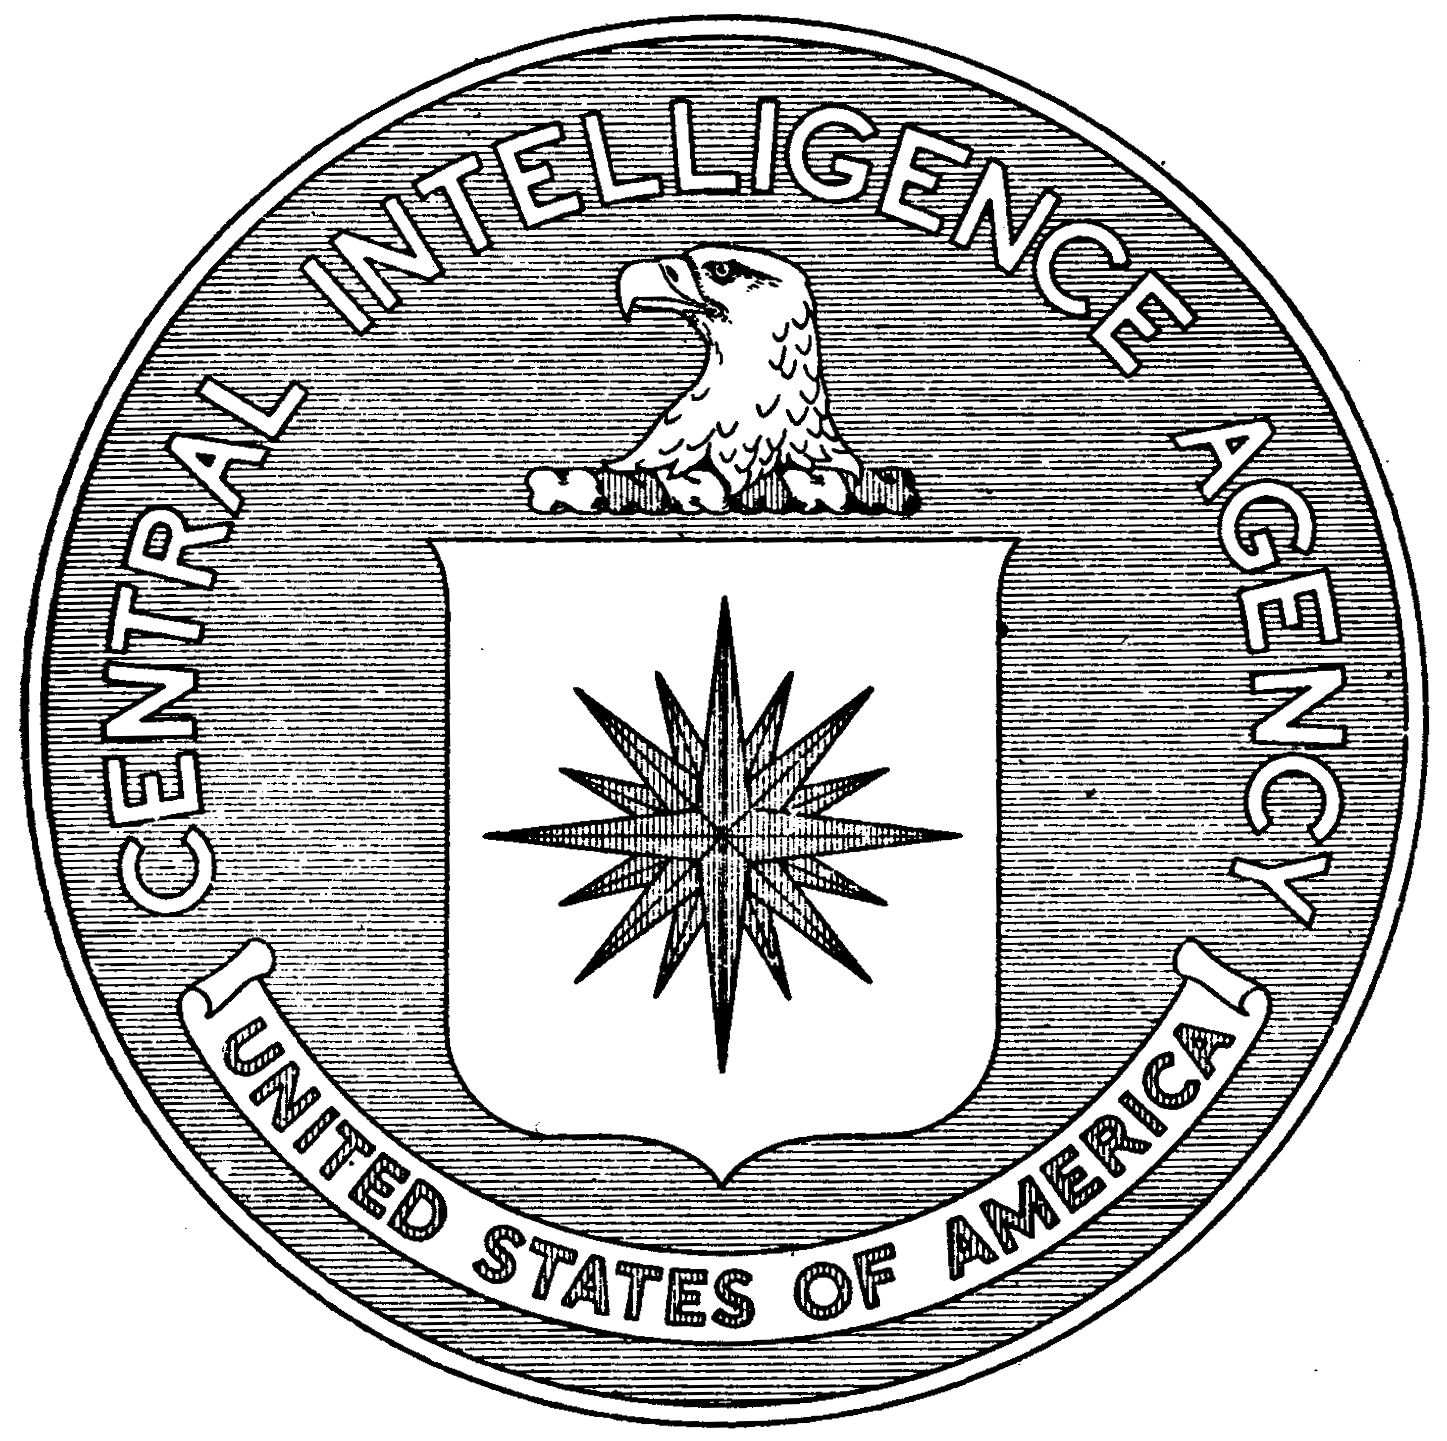 Free download Agent CIA Central Intelligence Agency